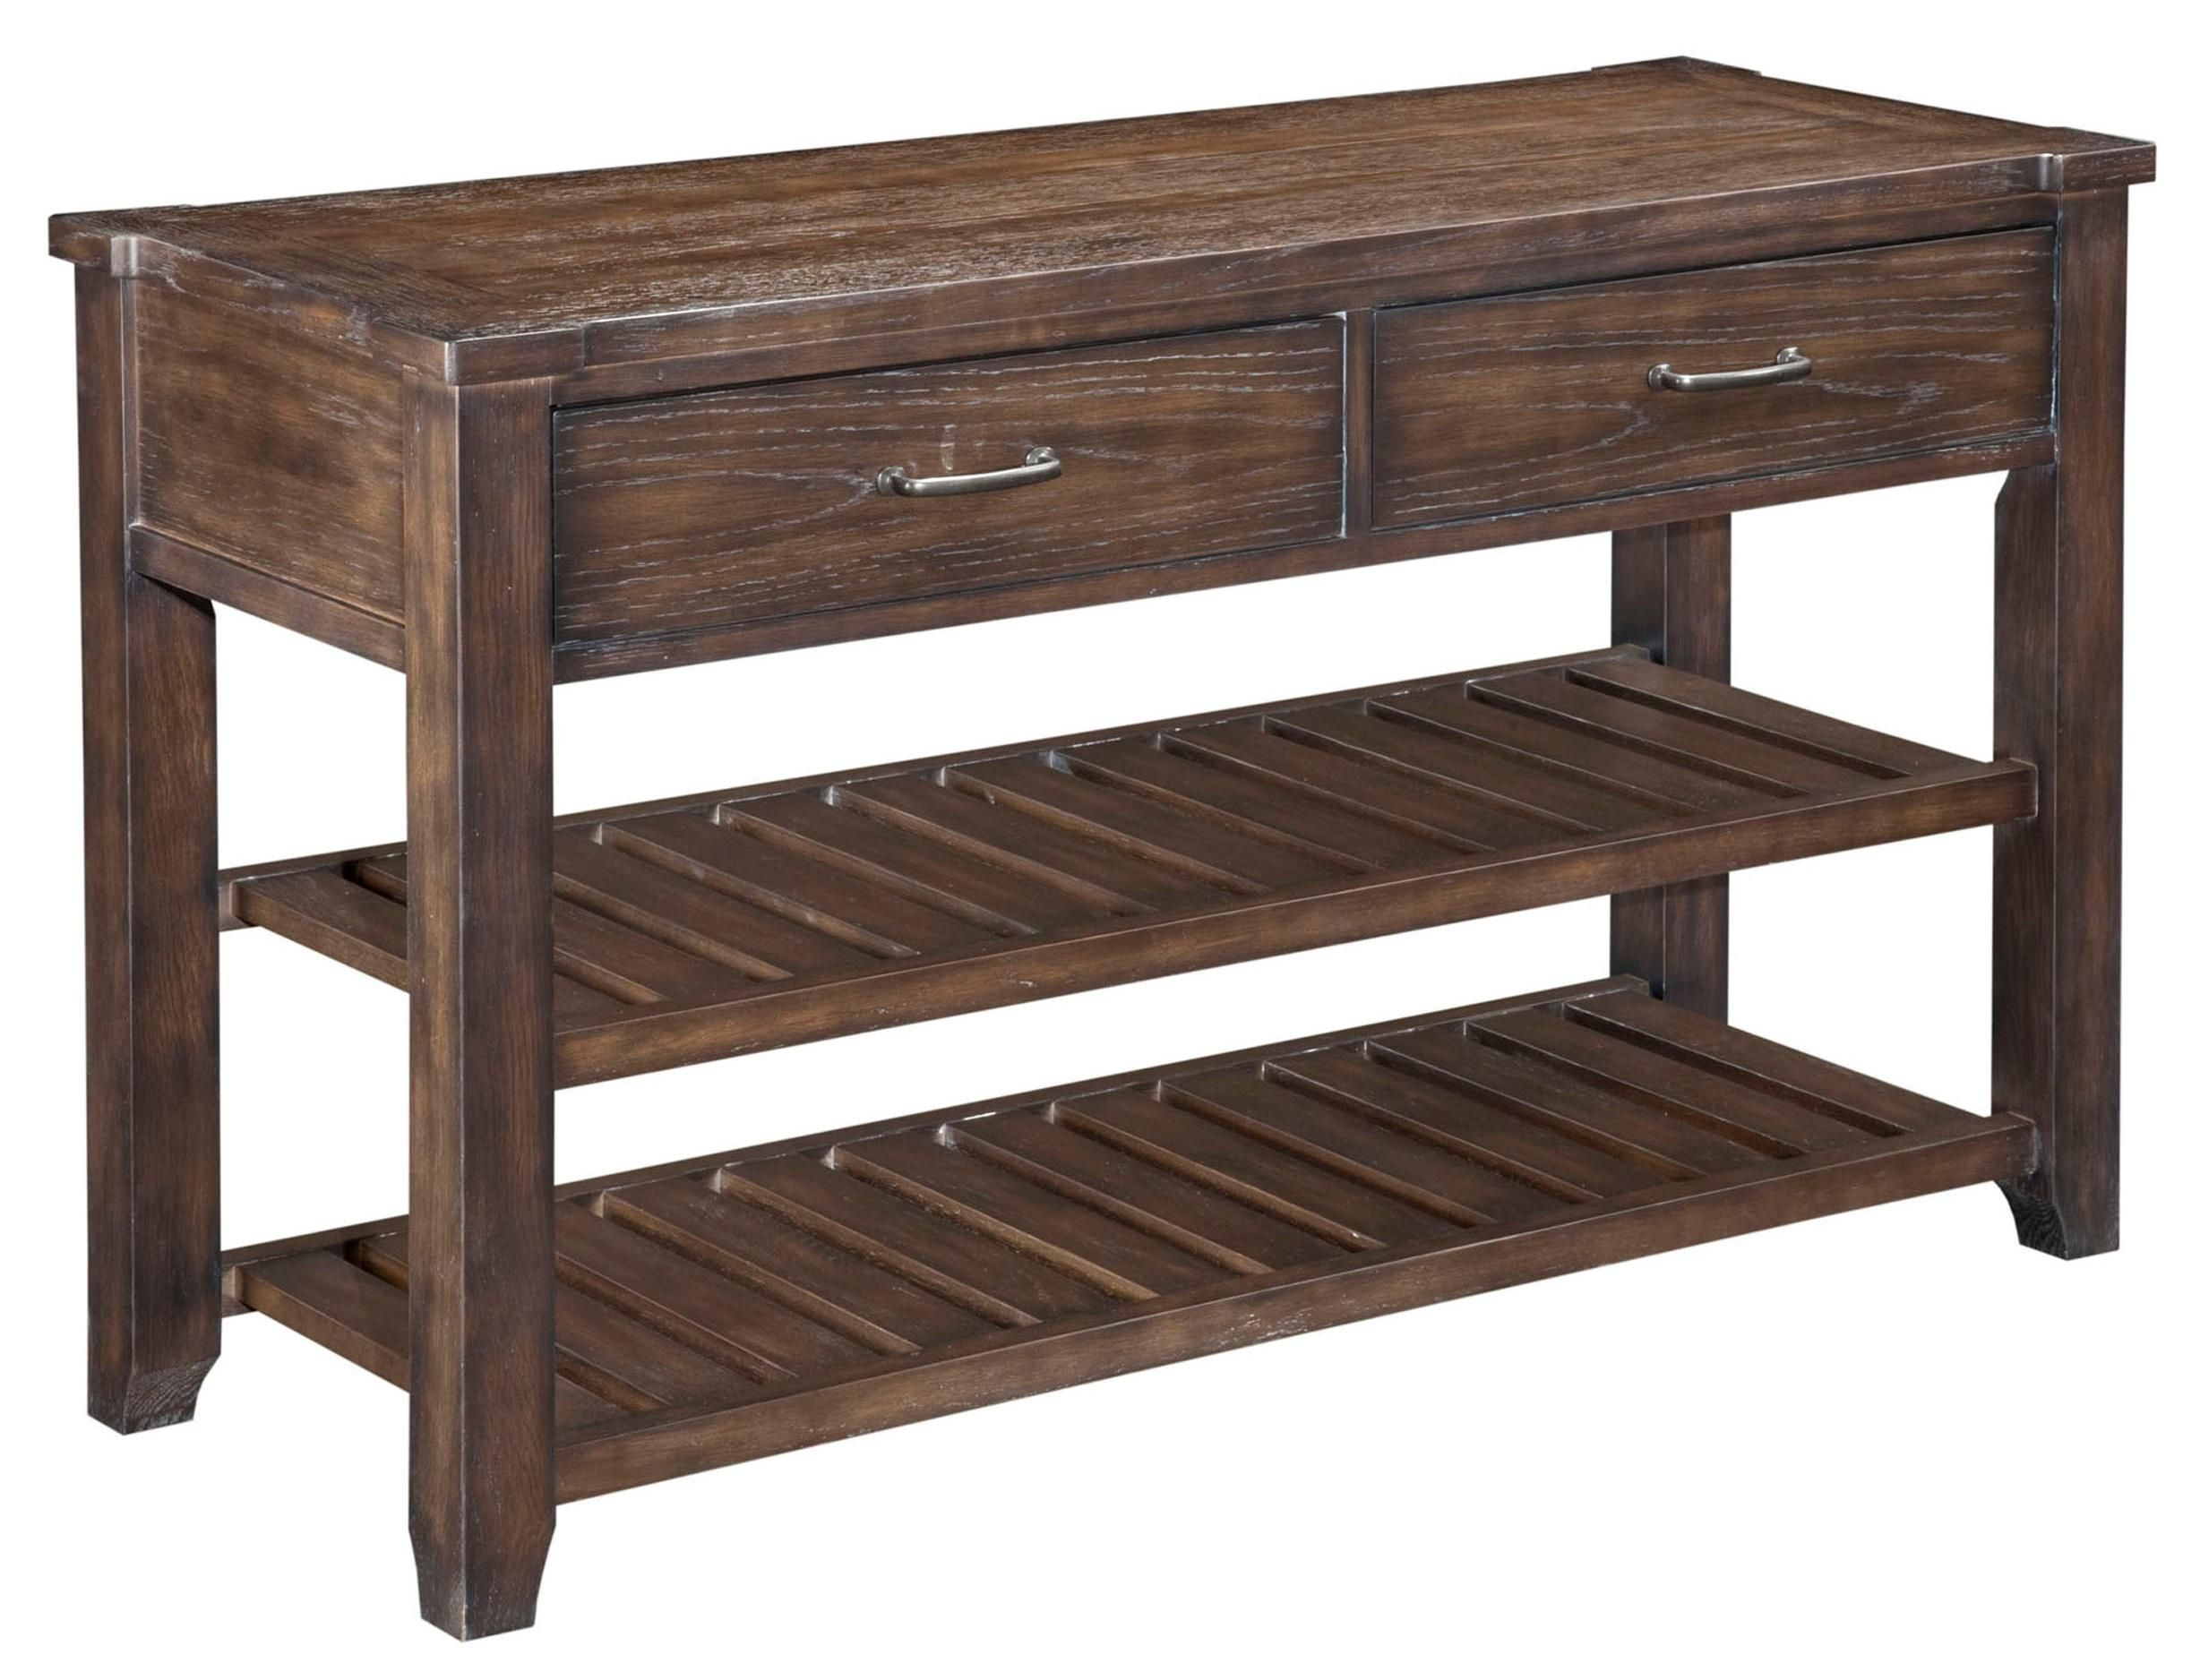 Attic retreat sofa table by broyhill furniture dream furniture attic retreat sofa table by broyhill furniture geotapseo Gallery